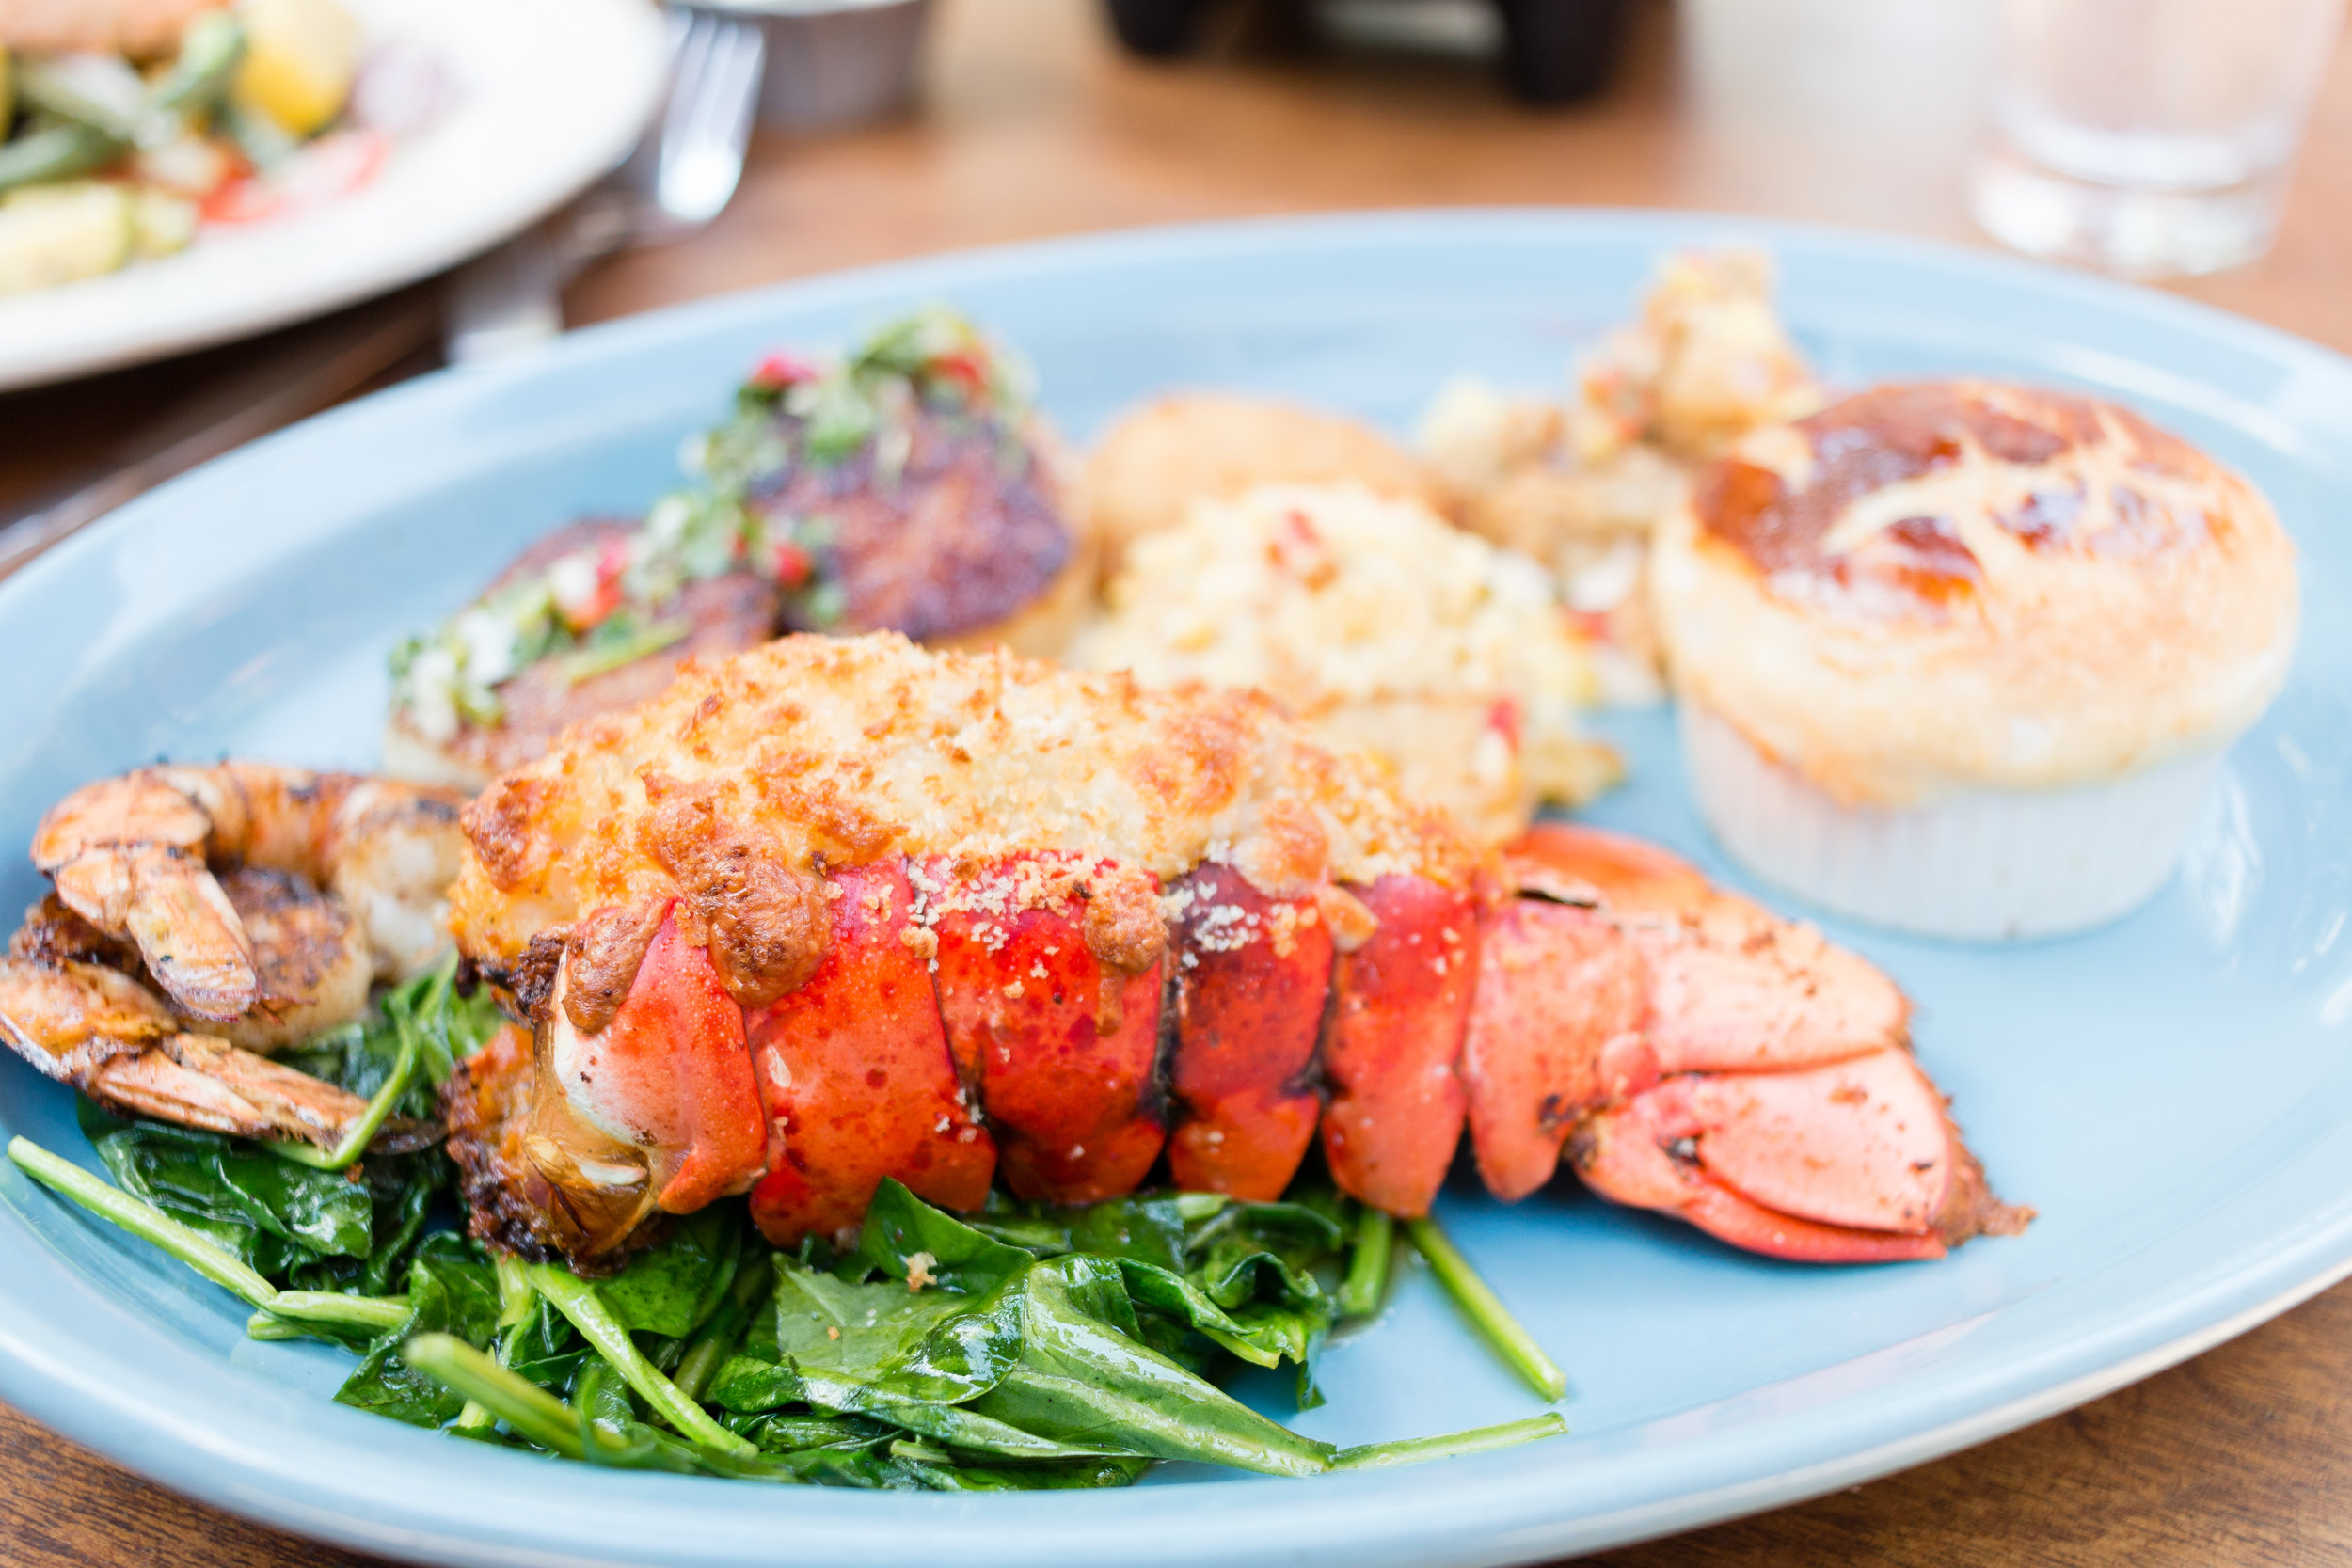 Hey Mr. Lobster Tail!